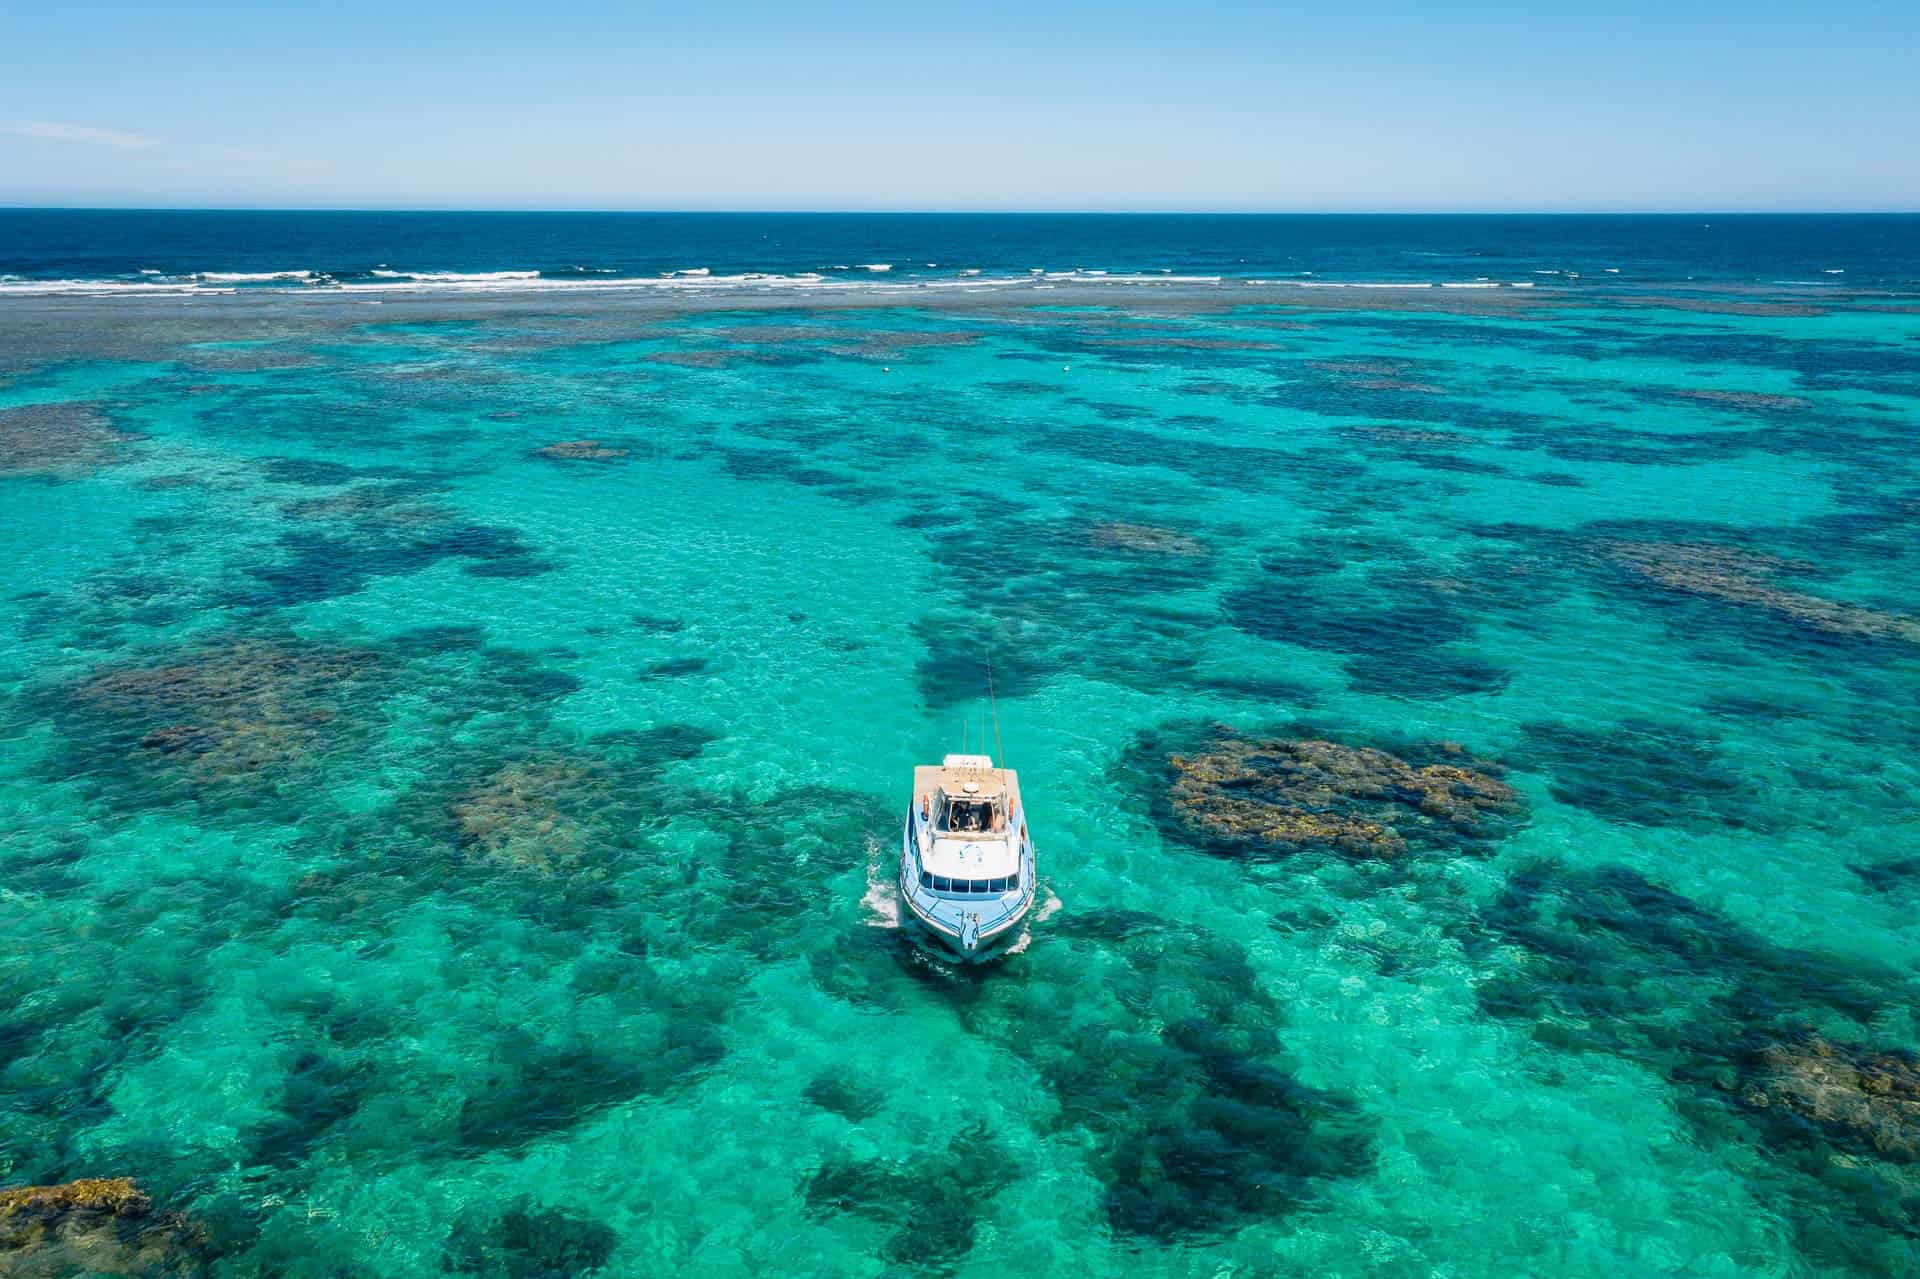 things to do in coral bay, coral bay things to do, coral bay western australia, coral bay, beaches in coral bay